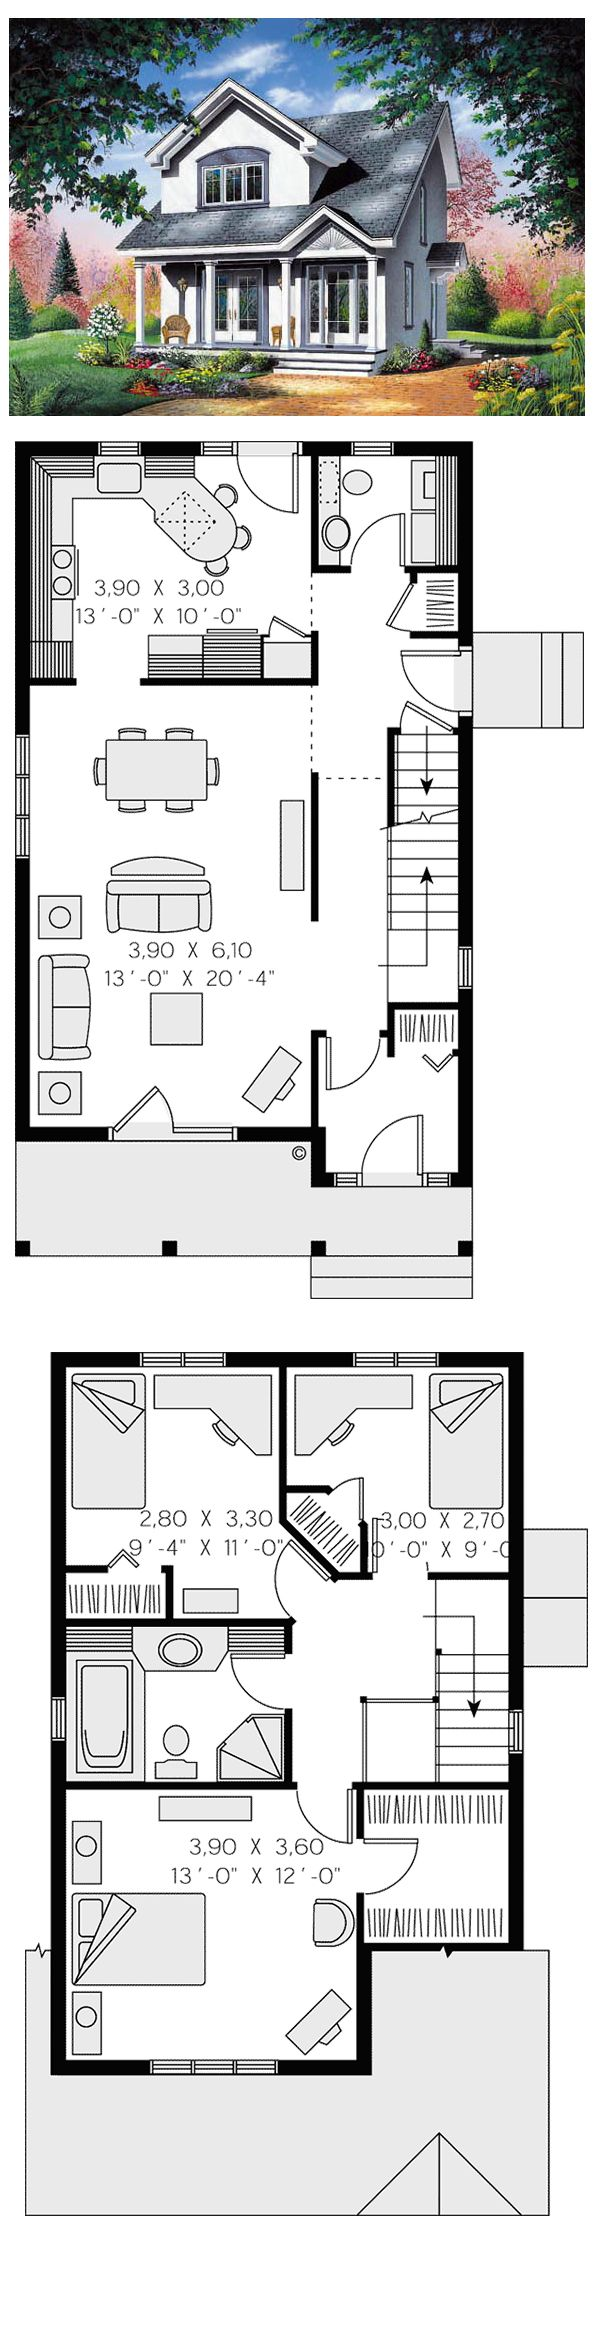 Drawn house contemporary house Plans 20+ ideas house on